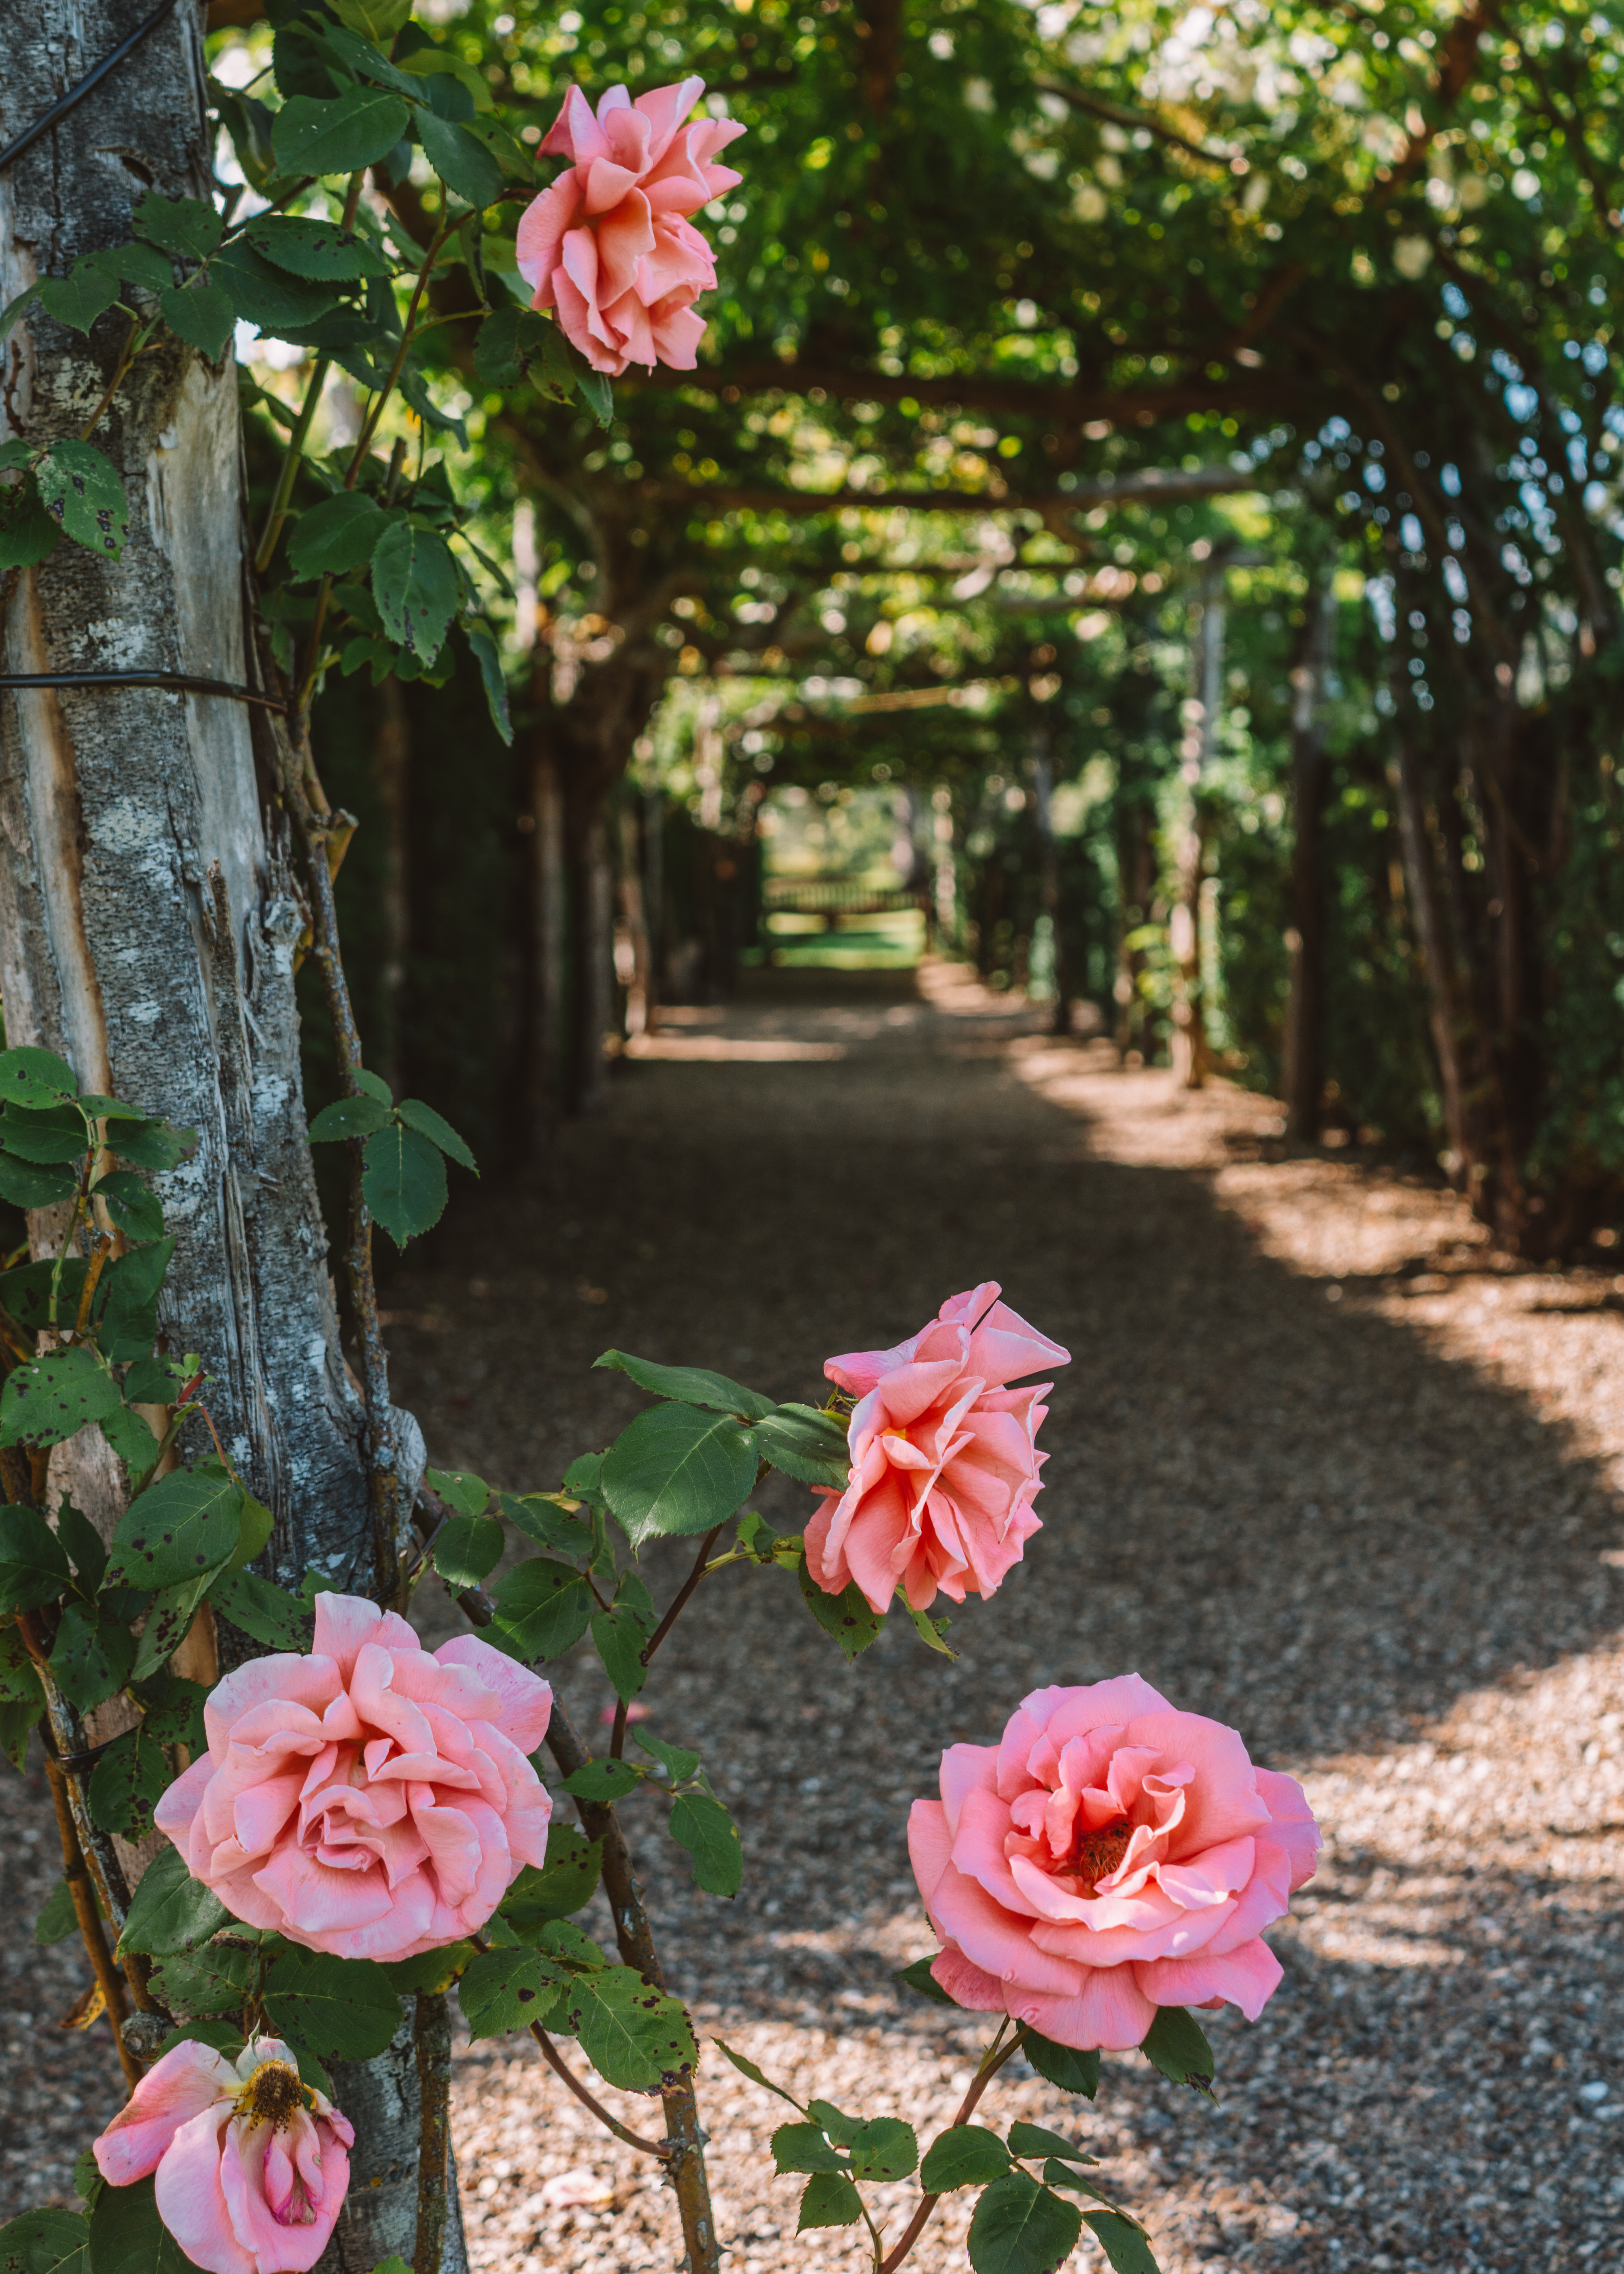 Roses at Hever Castle